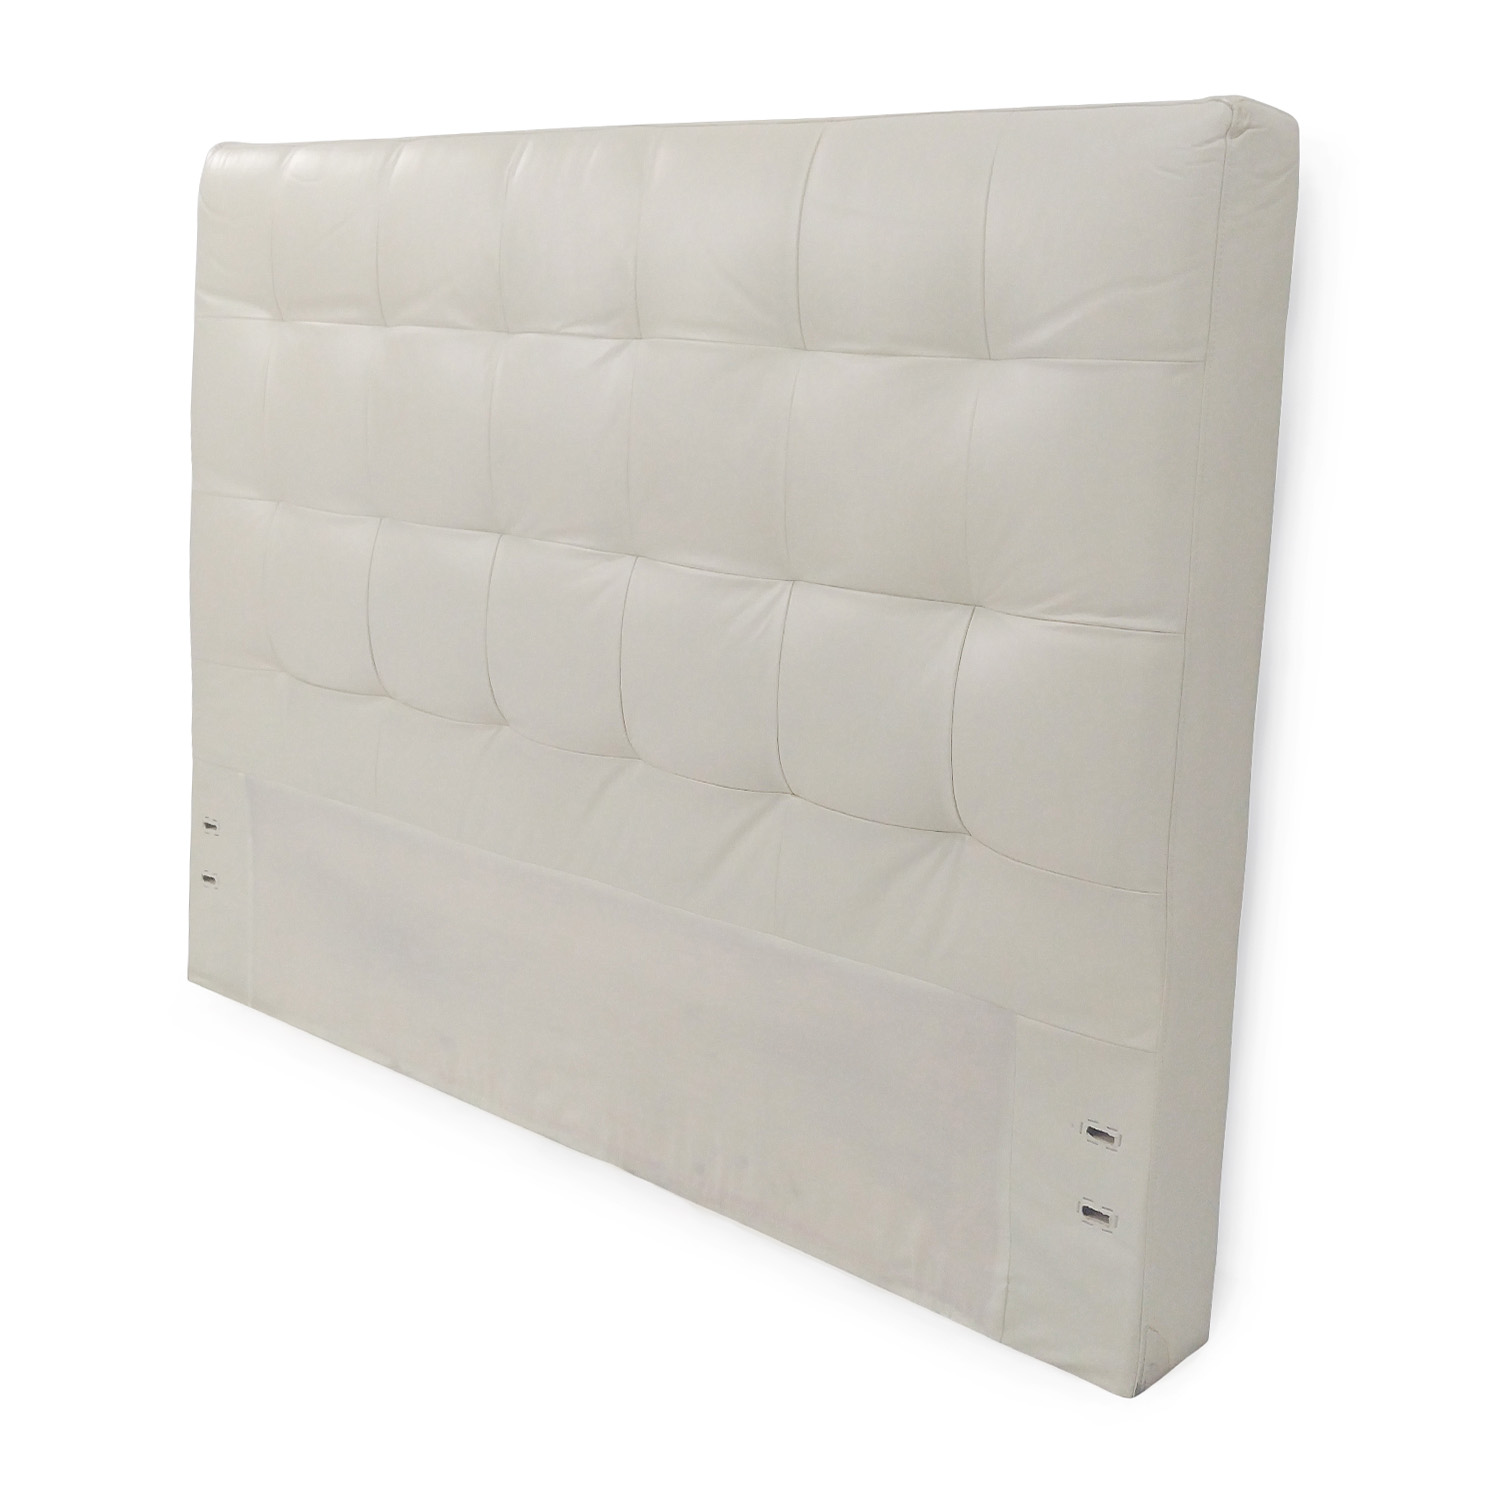 West Elm West Elm Tufted Leather Headboard